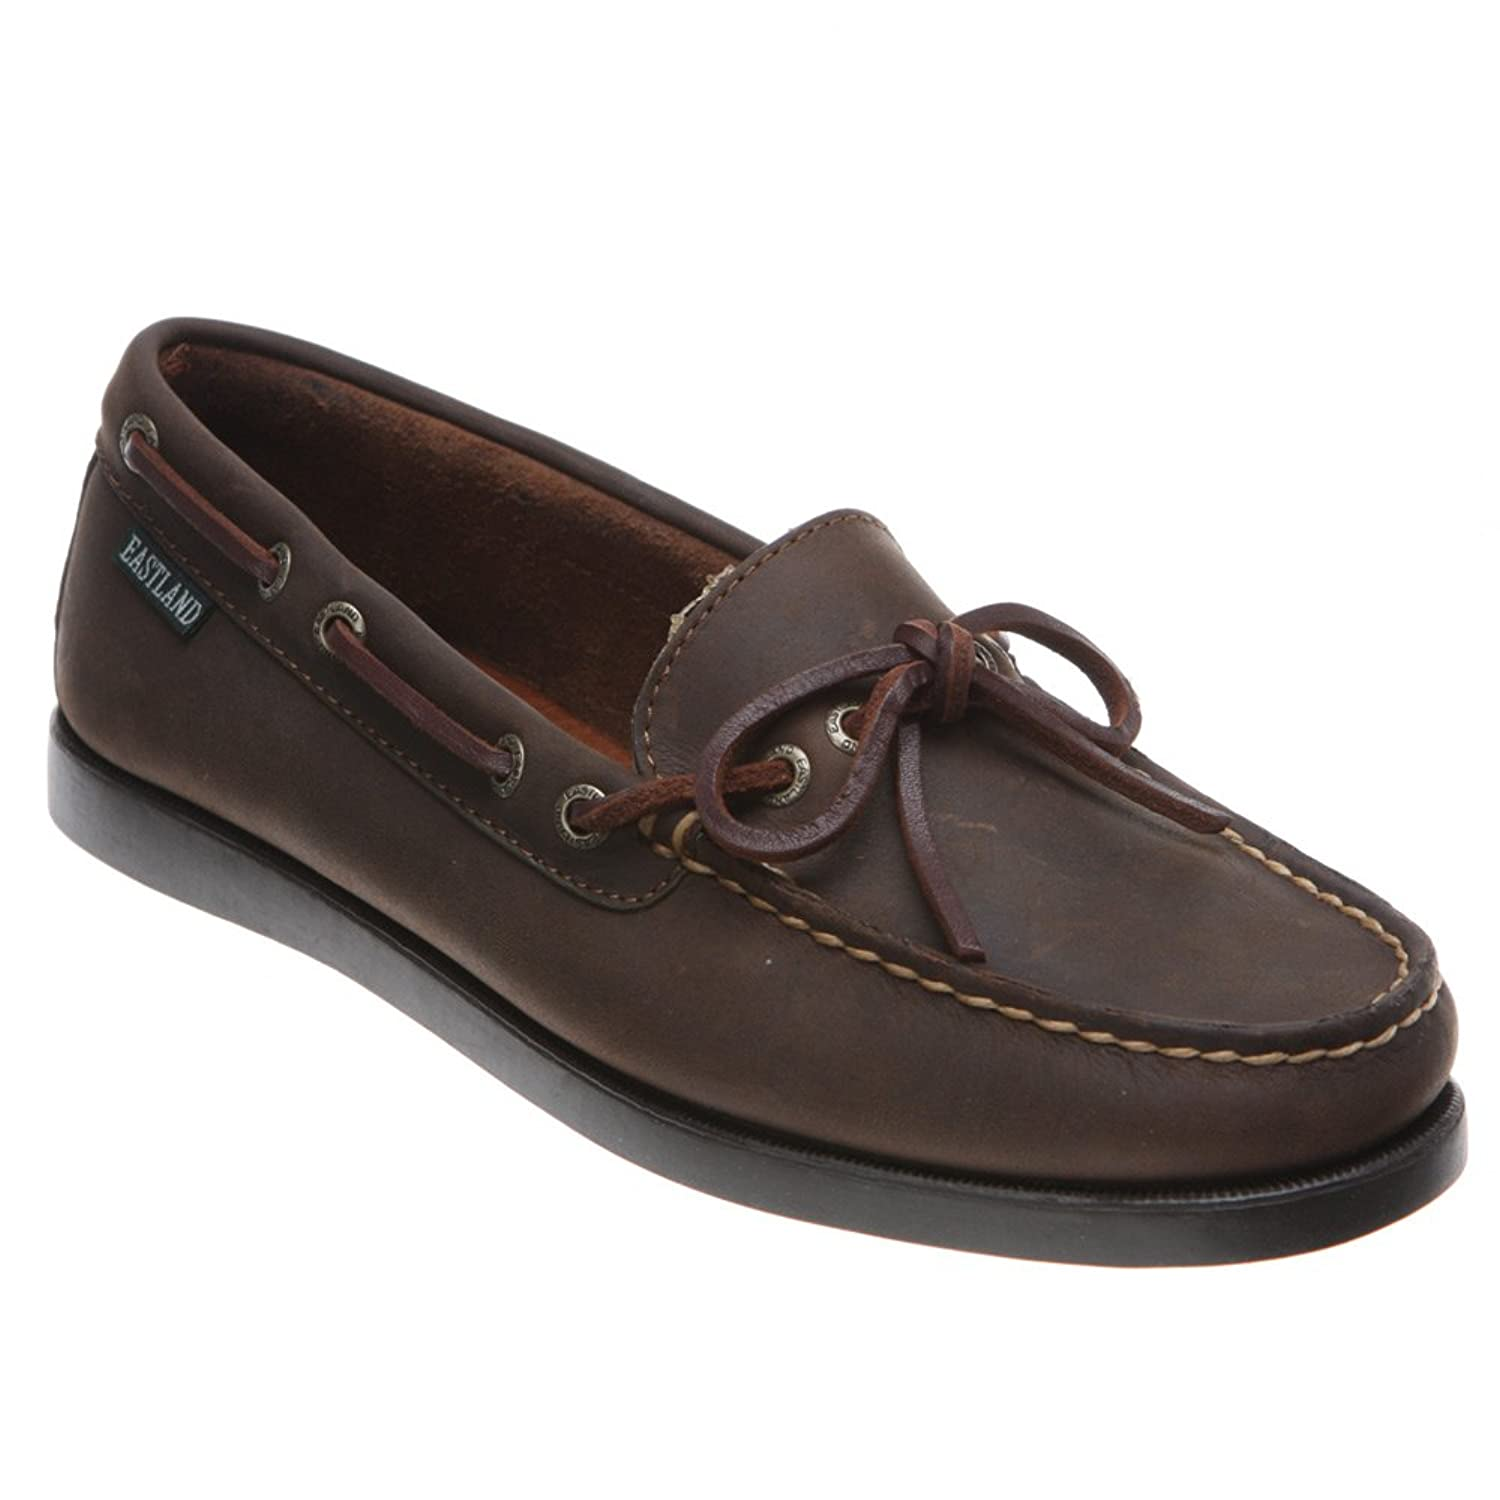 Eastland Women's Bomber Yarmouth Camp Moc Slip-Ons Brown 11 M US